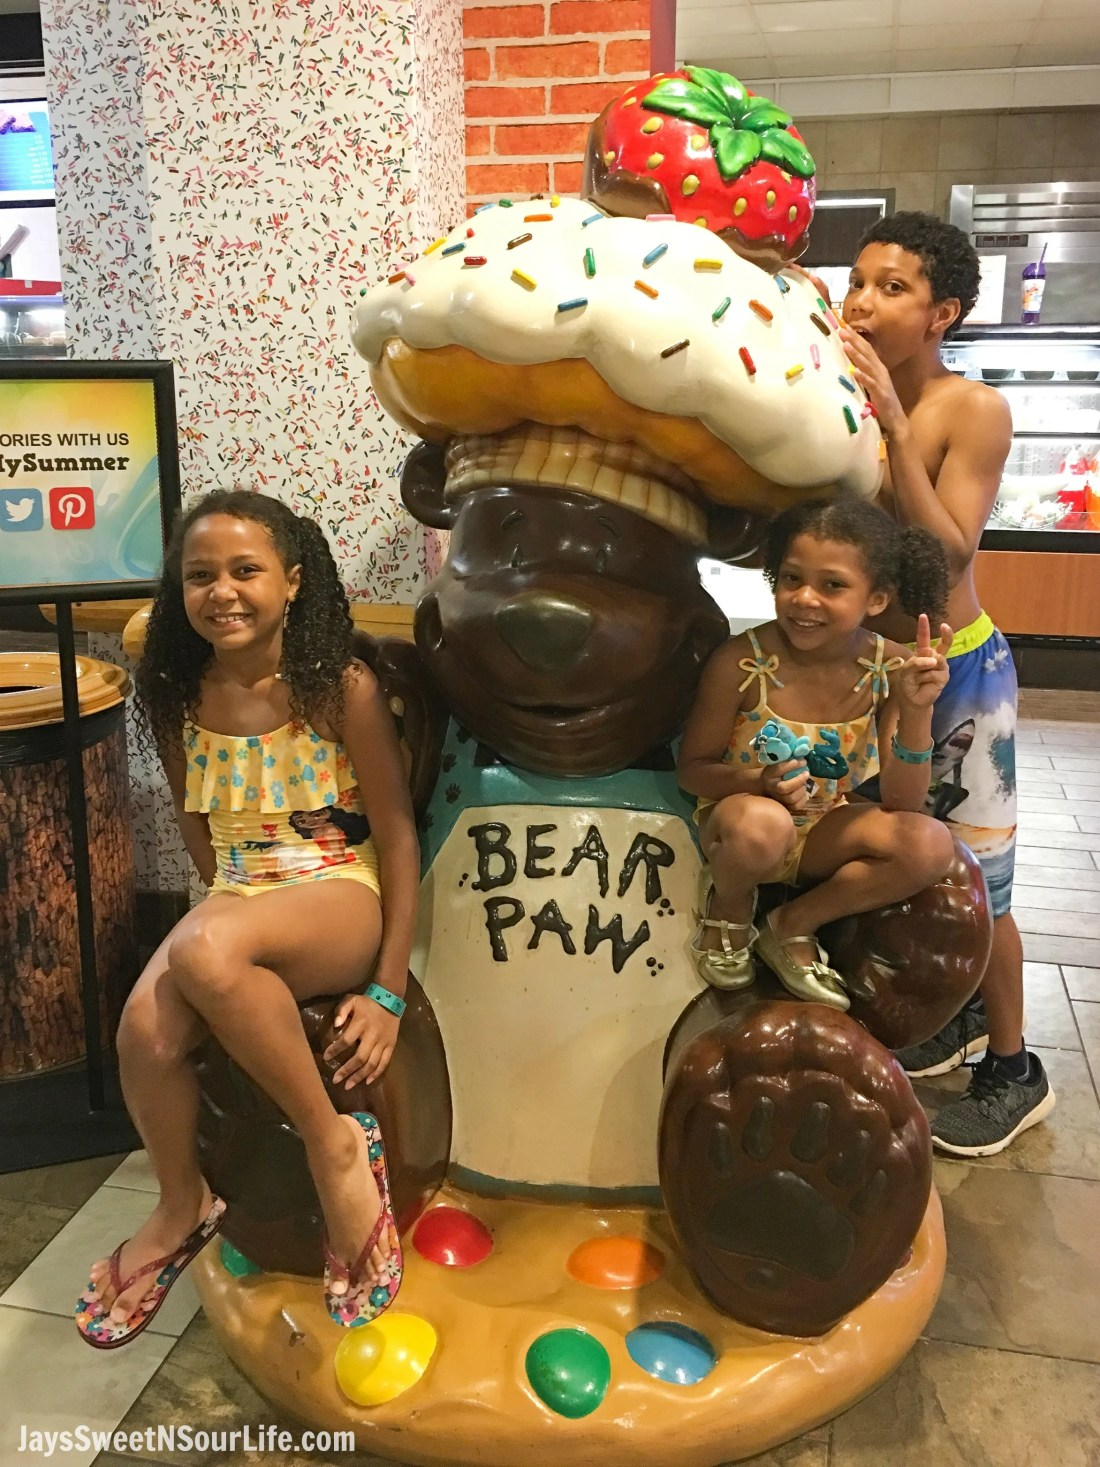 The Great Wolf Lodge - Cabarrus County Sweet Paws Family Selfie. A Large Families Adventure Guide To Cabarrus County - North Carolina - via JaysSweetNSourLife.com.